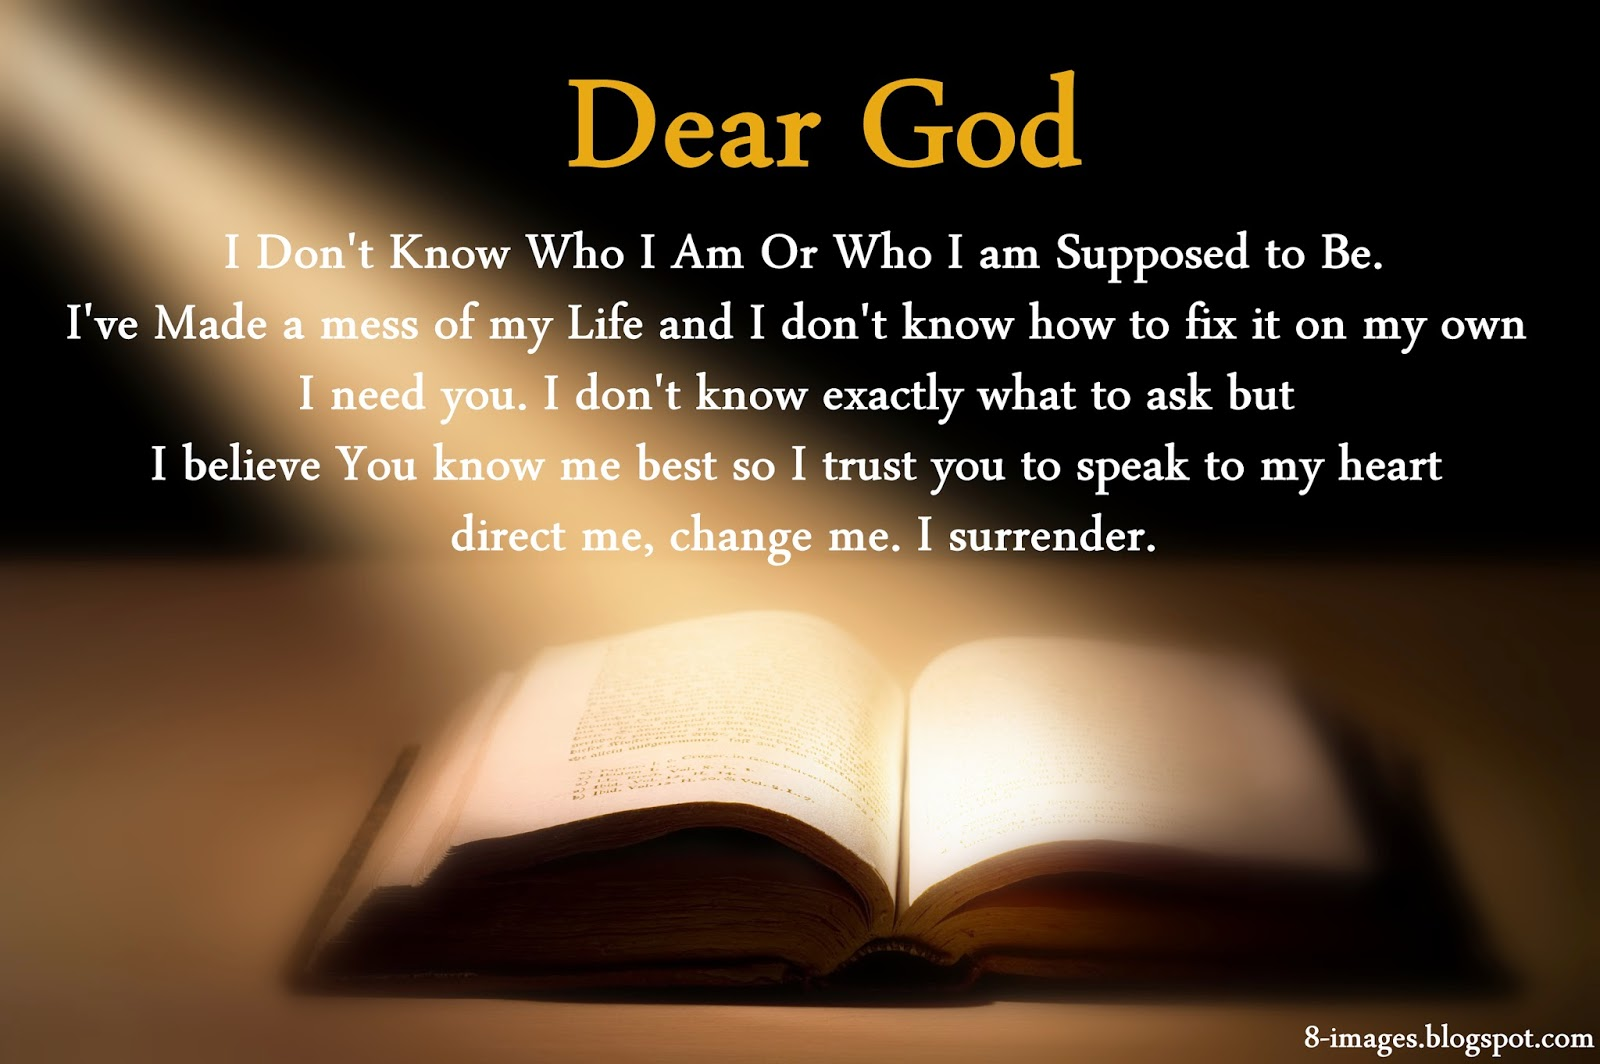 God Knows Your Needs Dear God i Don't Know Who i am